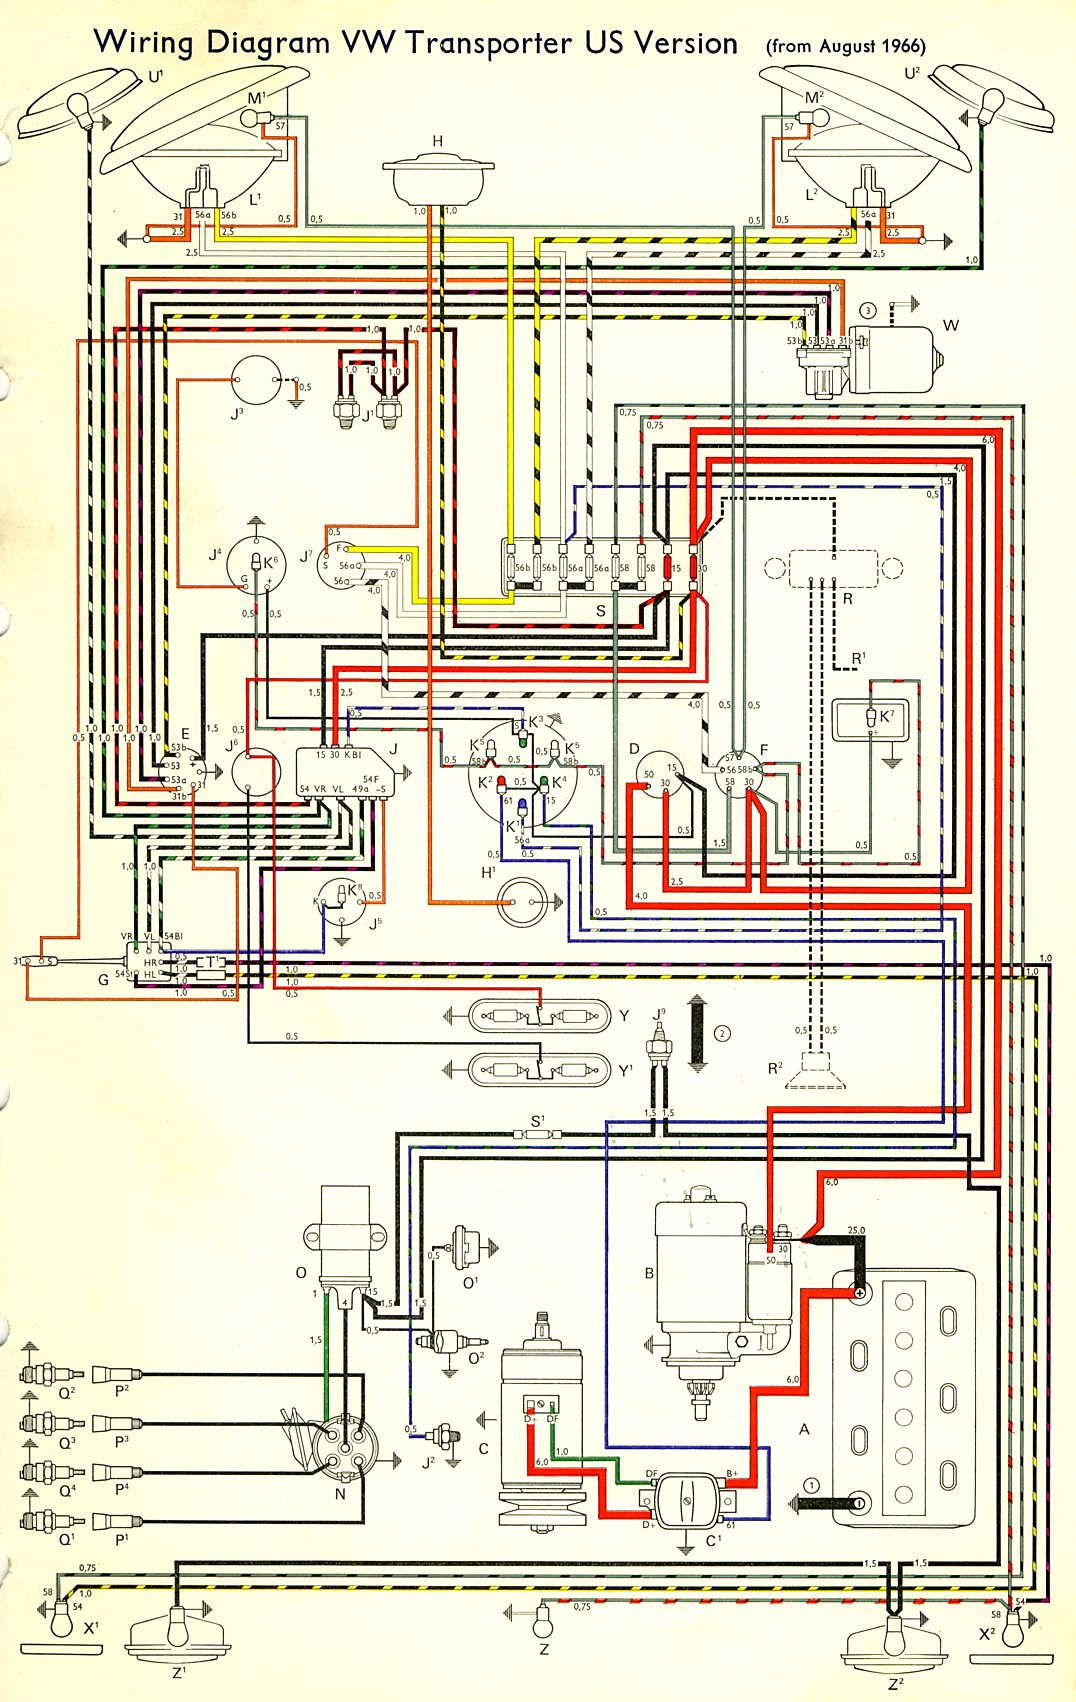 1962 vw wiring diagram private sharing about wiring diagram u2022 rh caraccessoriesandsoftware co uk vw engine wiring diagram vw engine wiring diagram